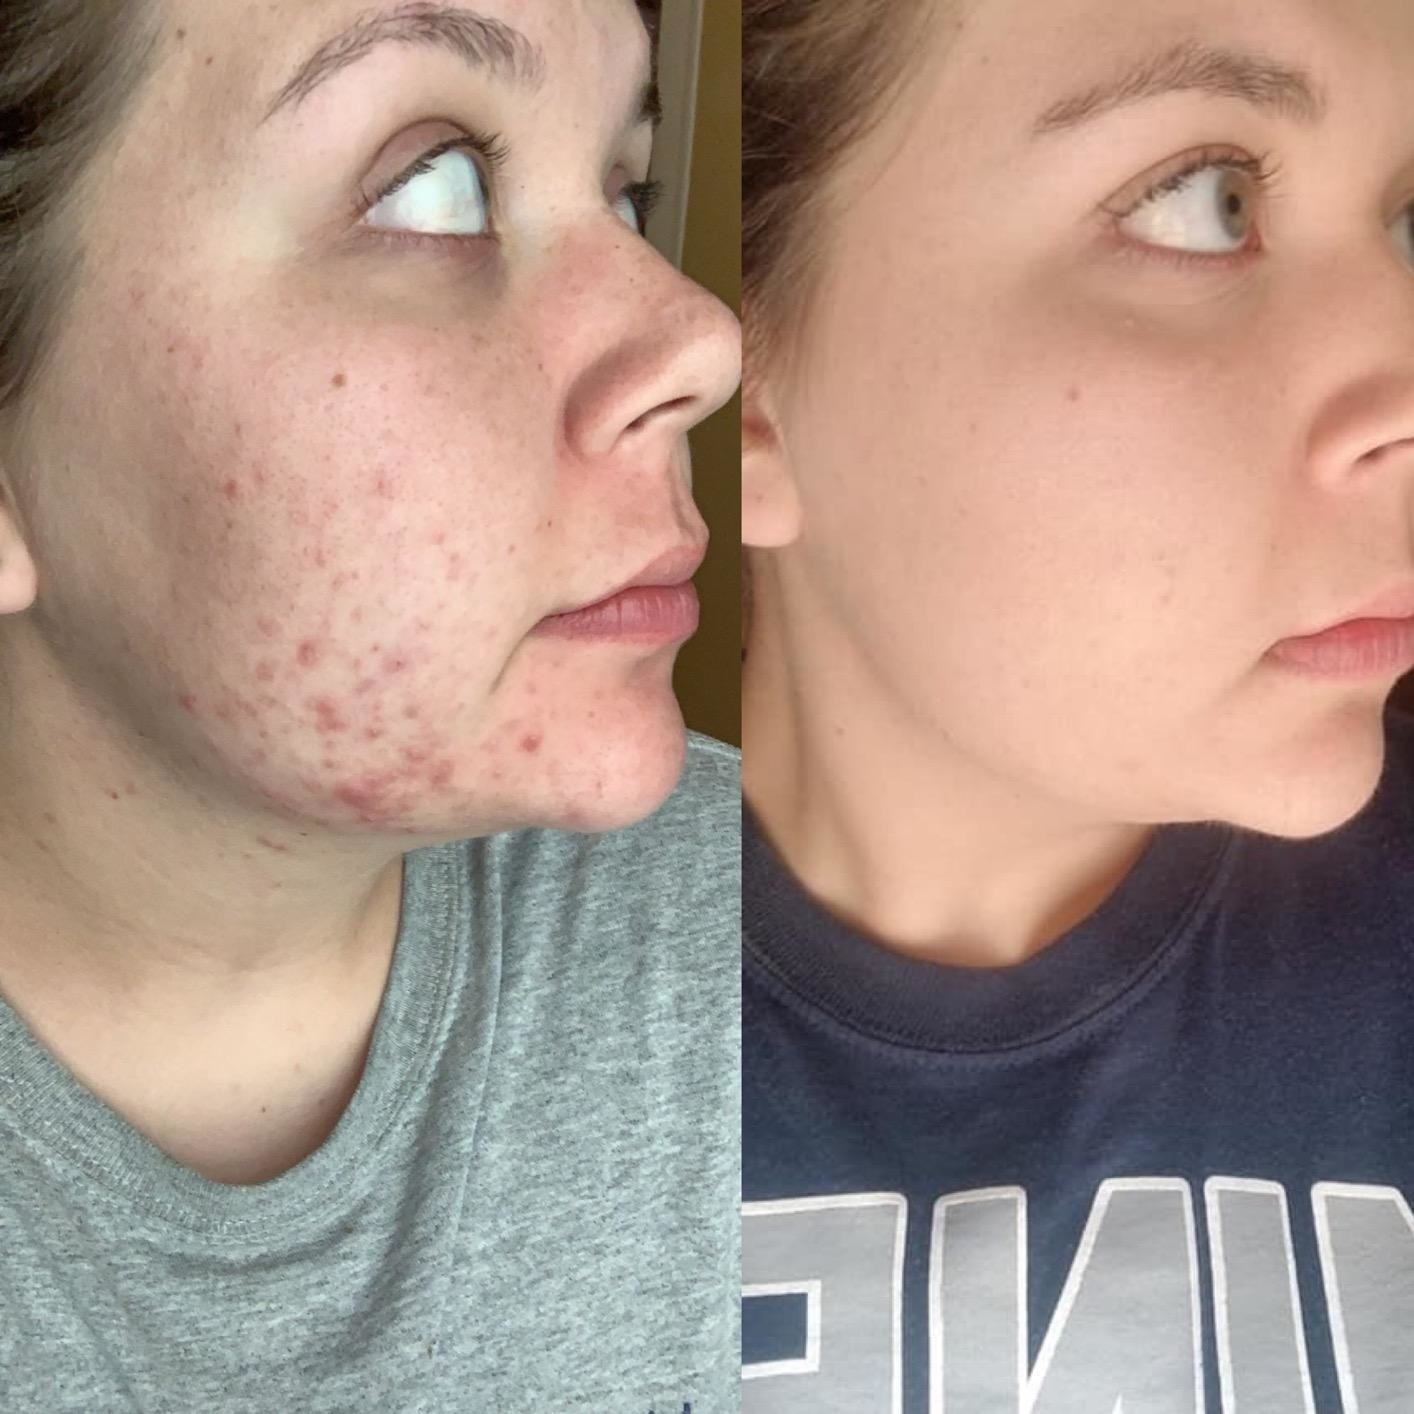 A before photo of a reviewer with lots of acne and acne scars around her chin and cheeks, and an after photo of the same reviewer with clear skin and basically no breakouts or scars